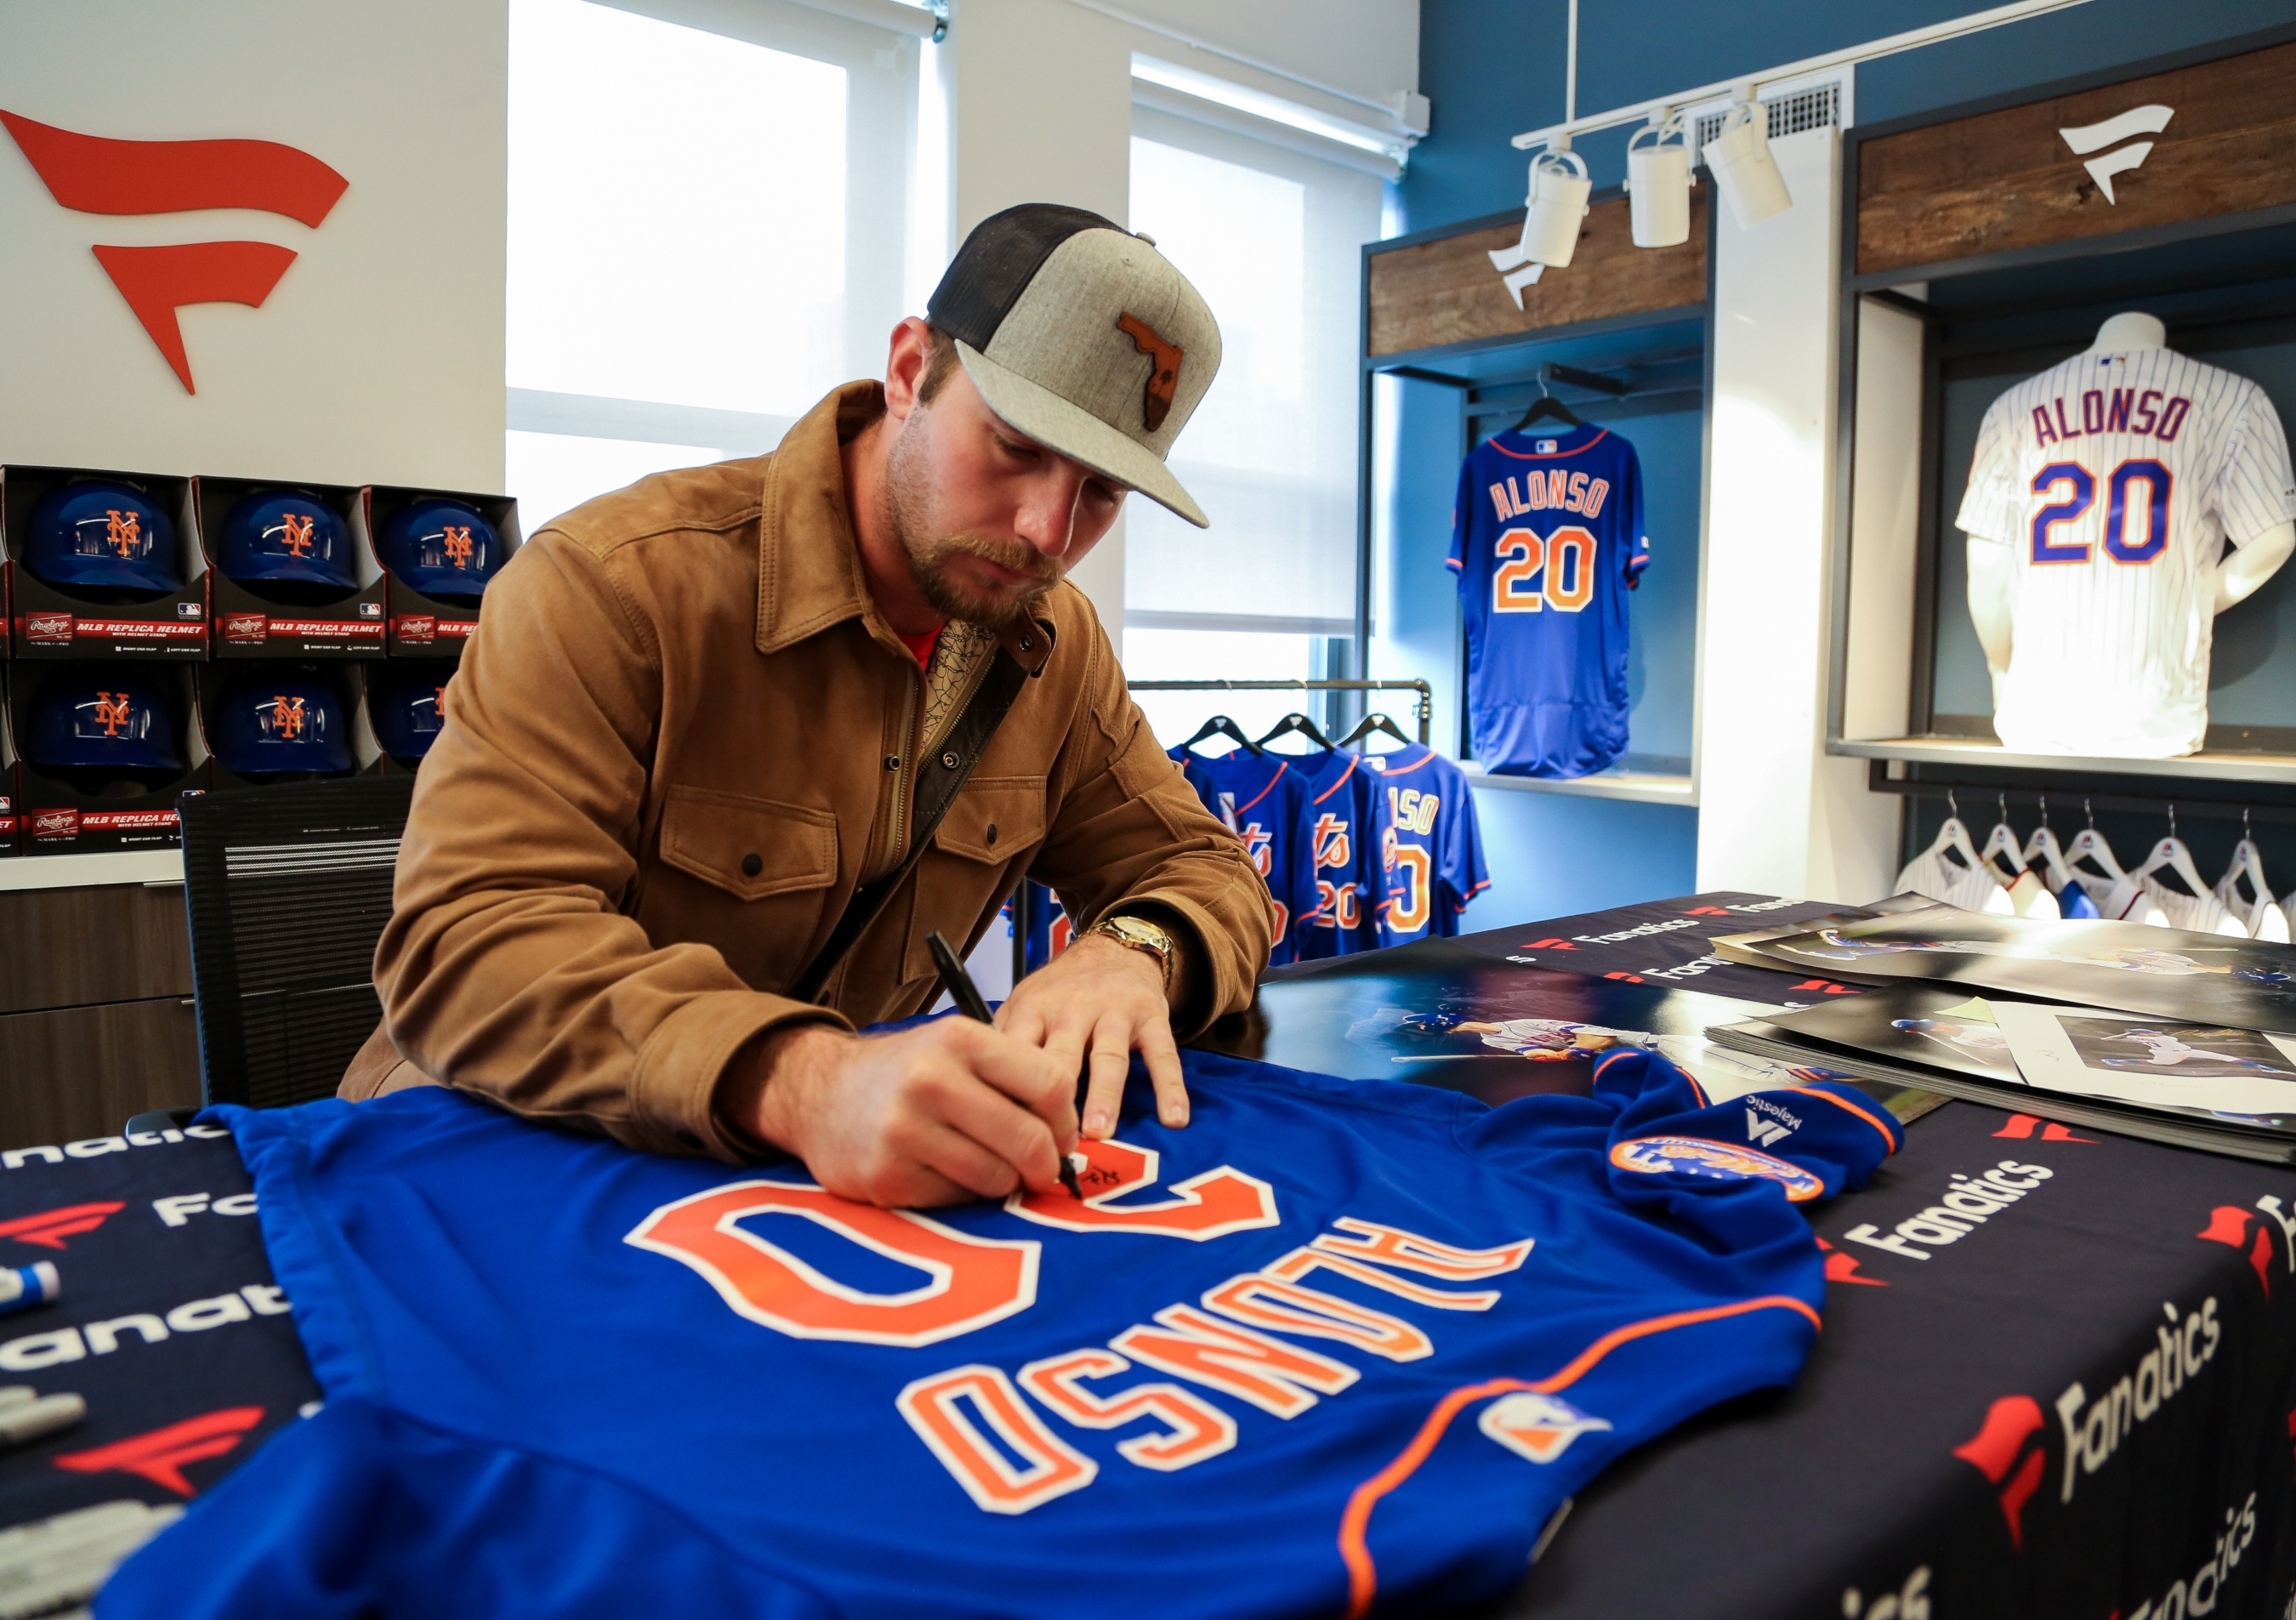 Pete-alonso-signing